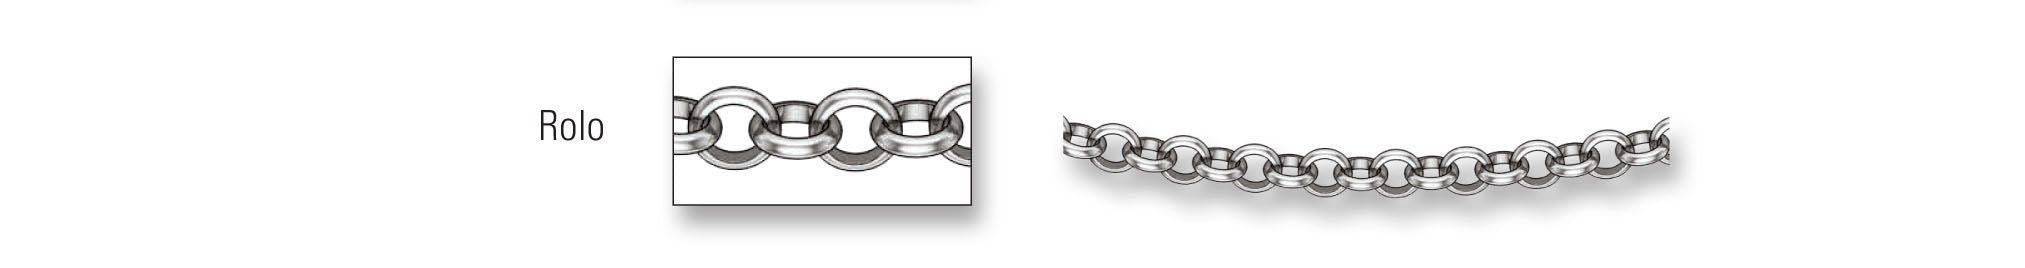 Chains - Rolo and Belcher Chain Link Image